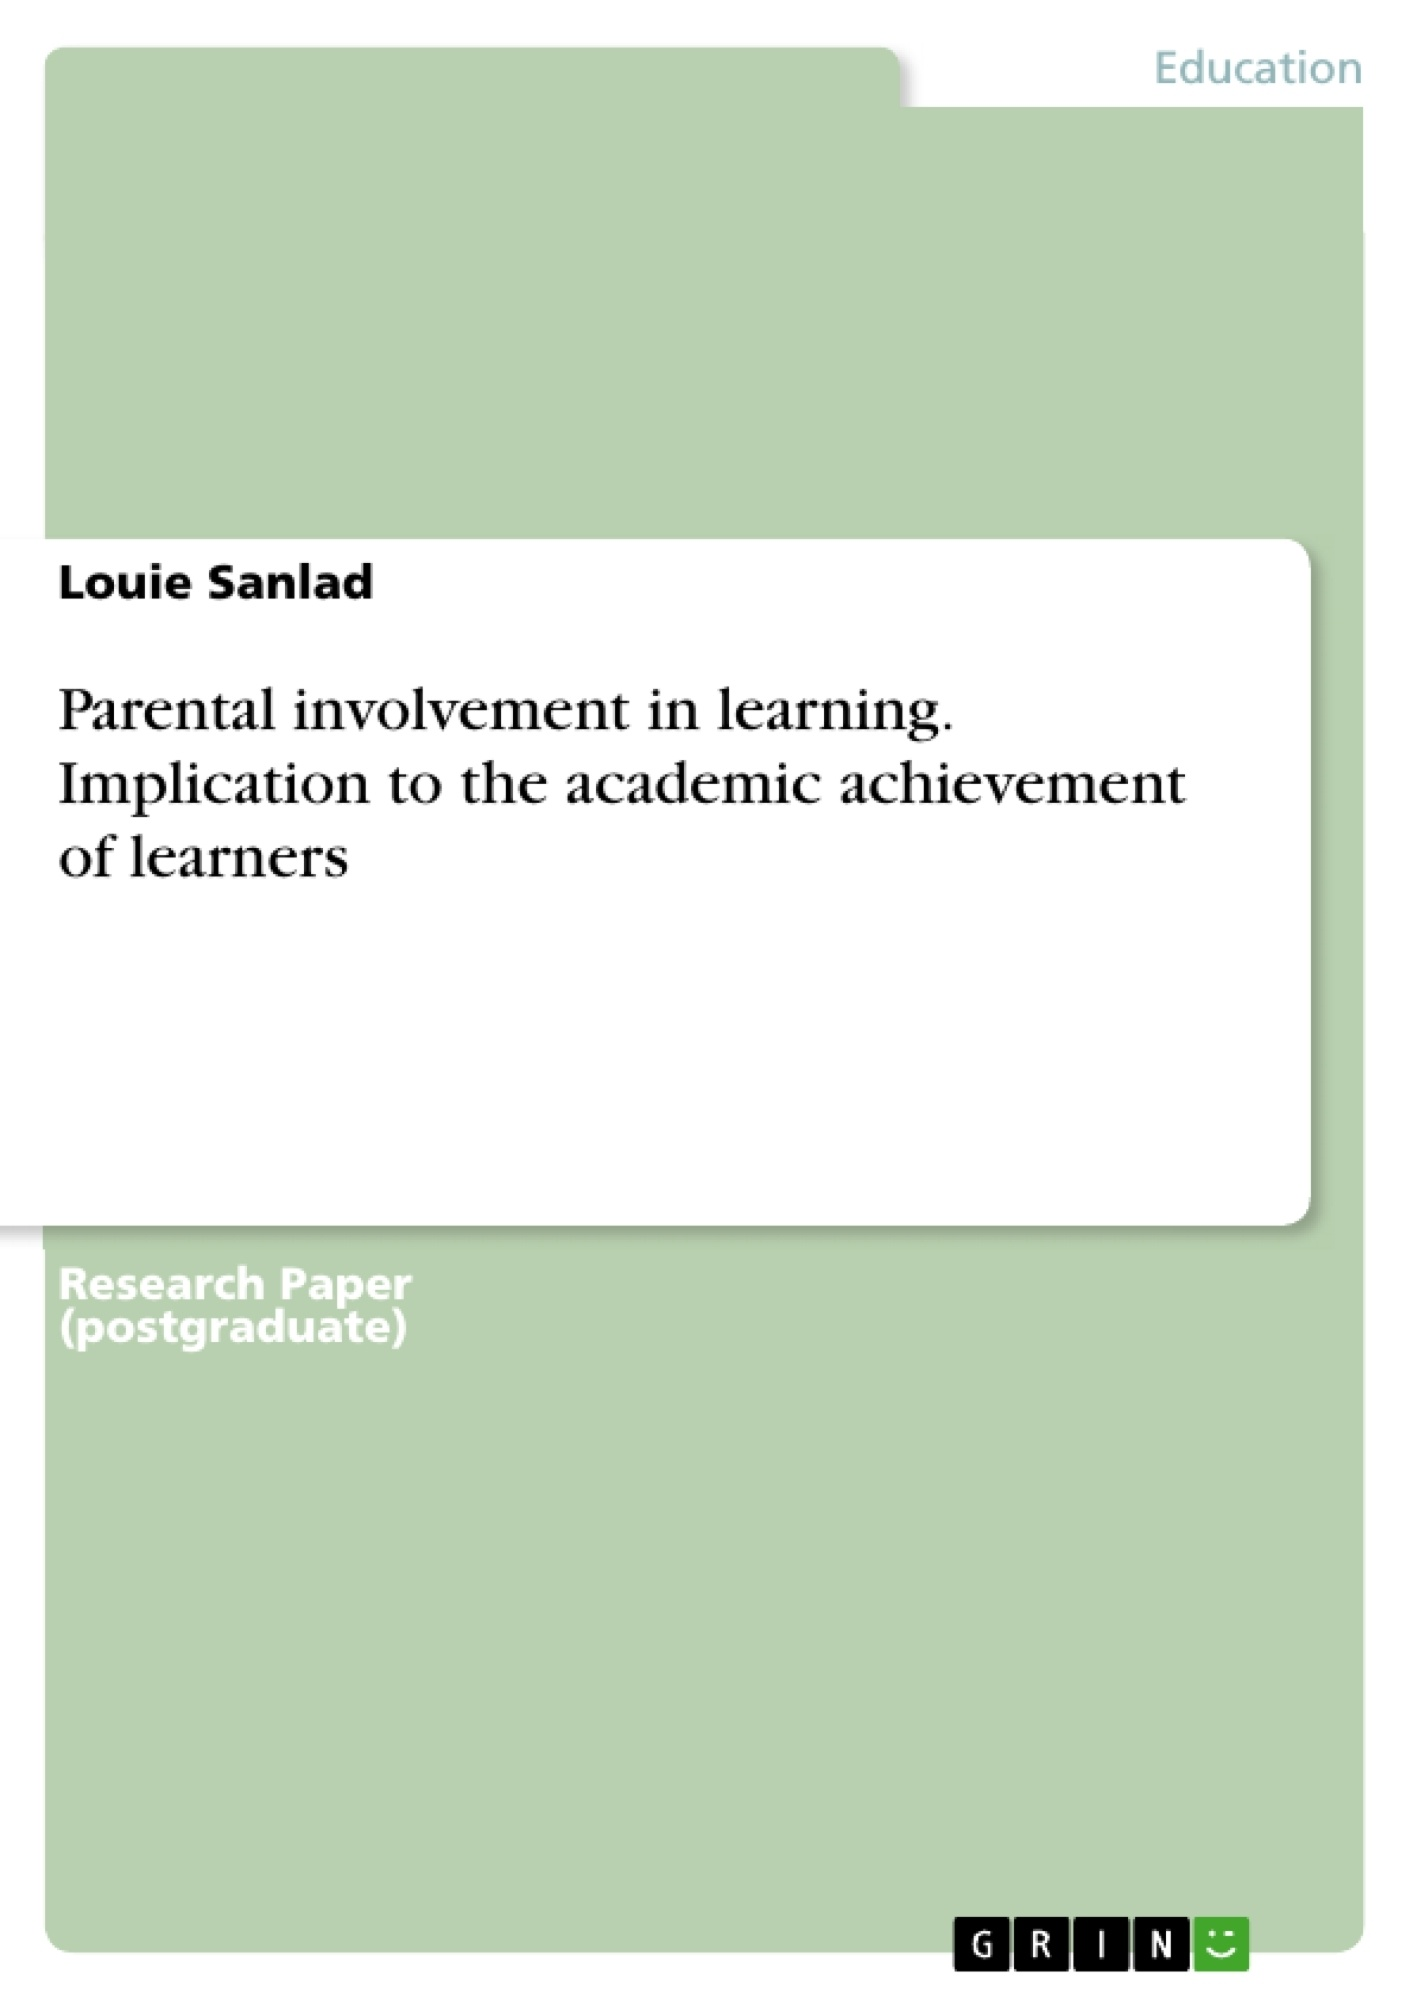 Title: Parental involvement in learning. Implication to the academic achievement of learners